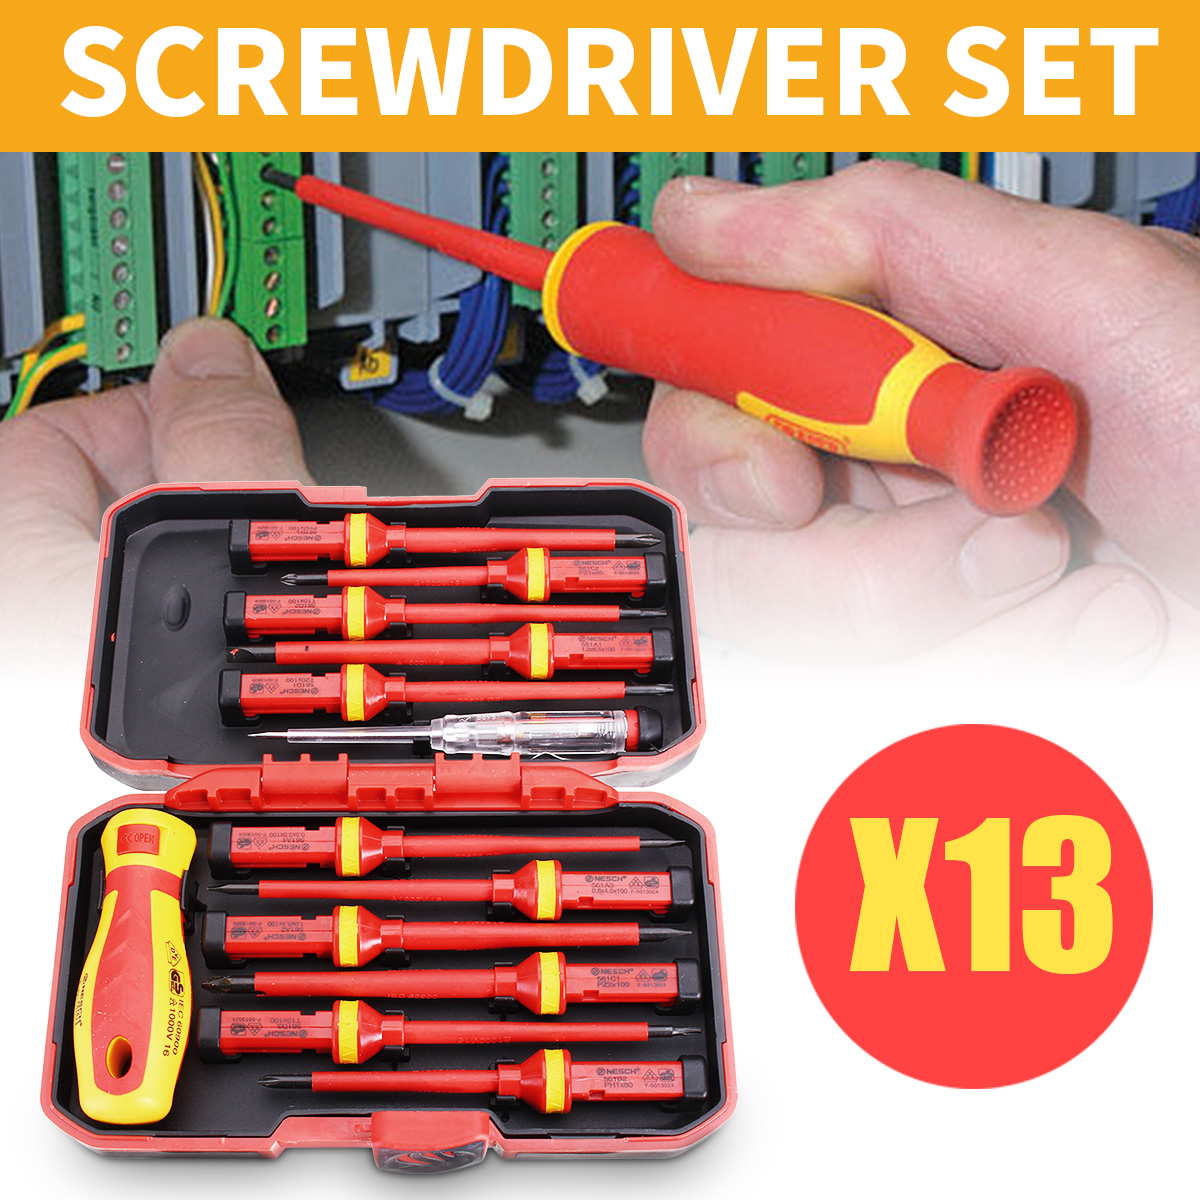 13Pcs Insulated Screwdriver Set 1000V Magnetic Phillips Slotted Torx Hand Tools With Detachable Handle цена